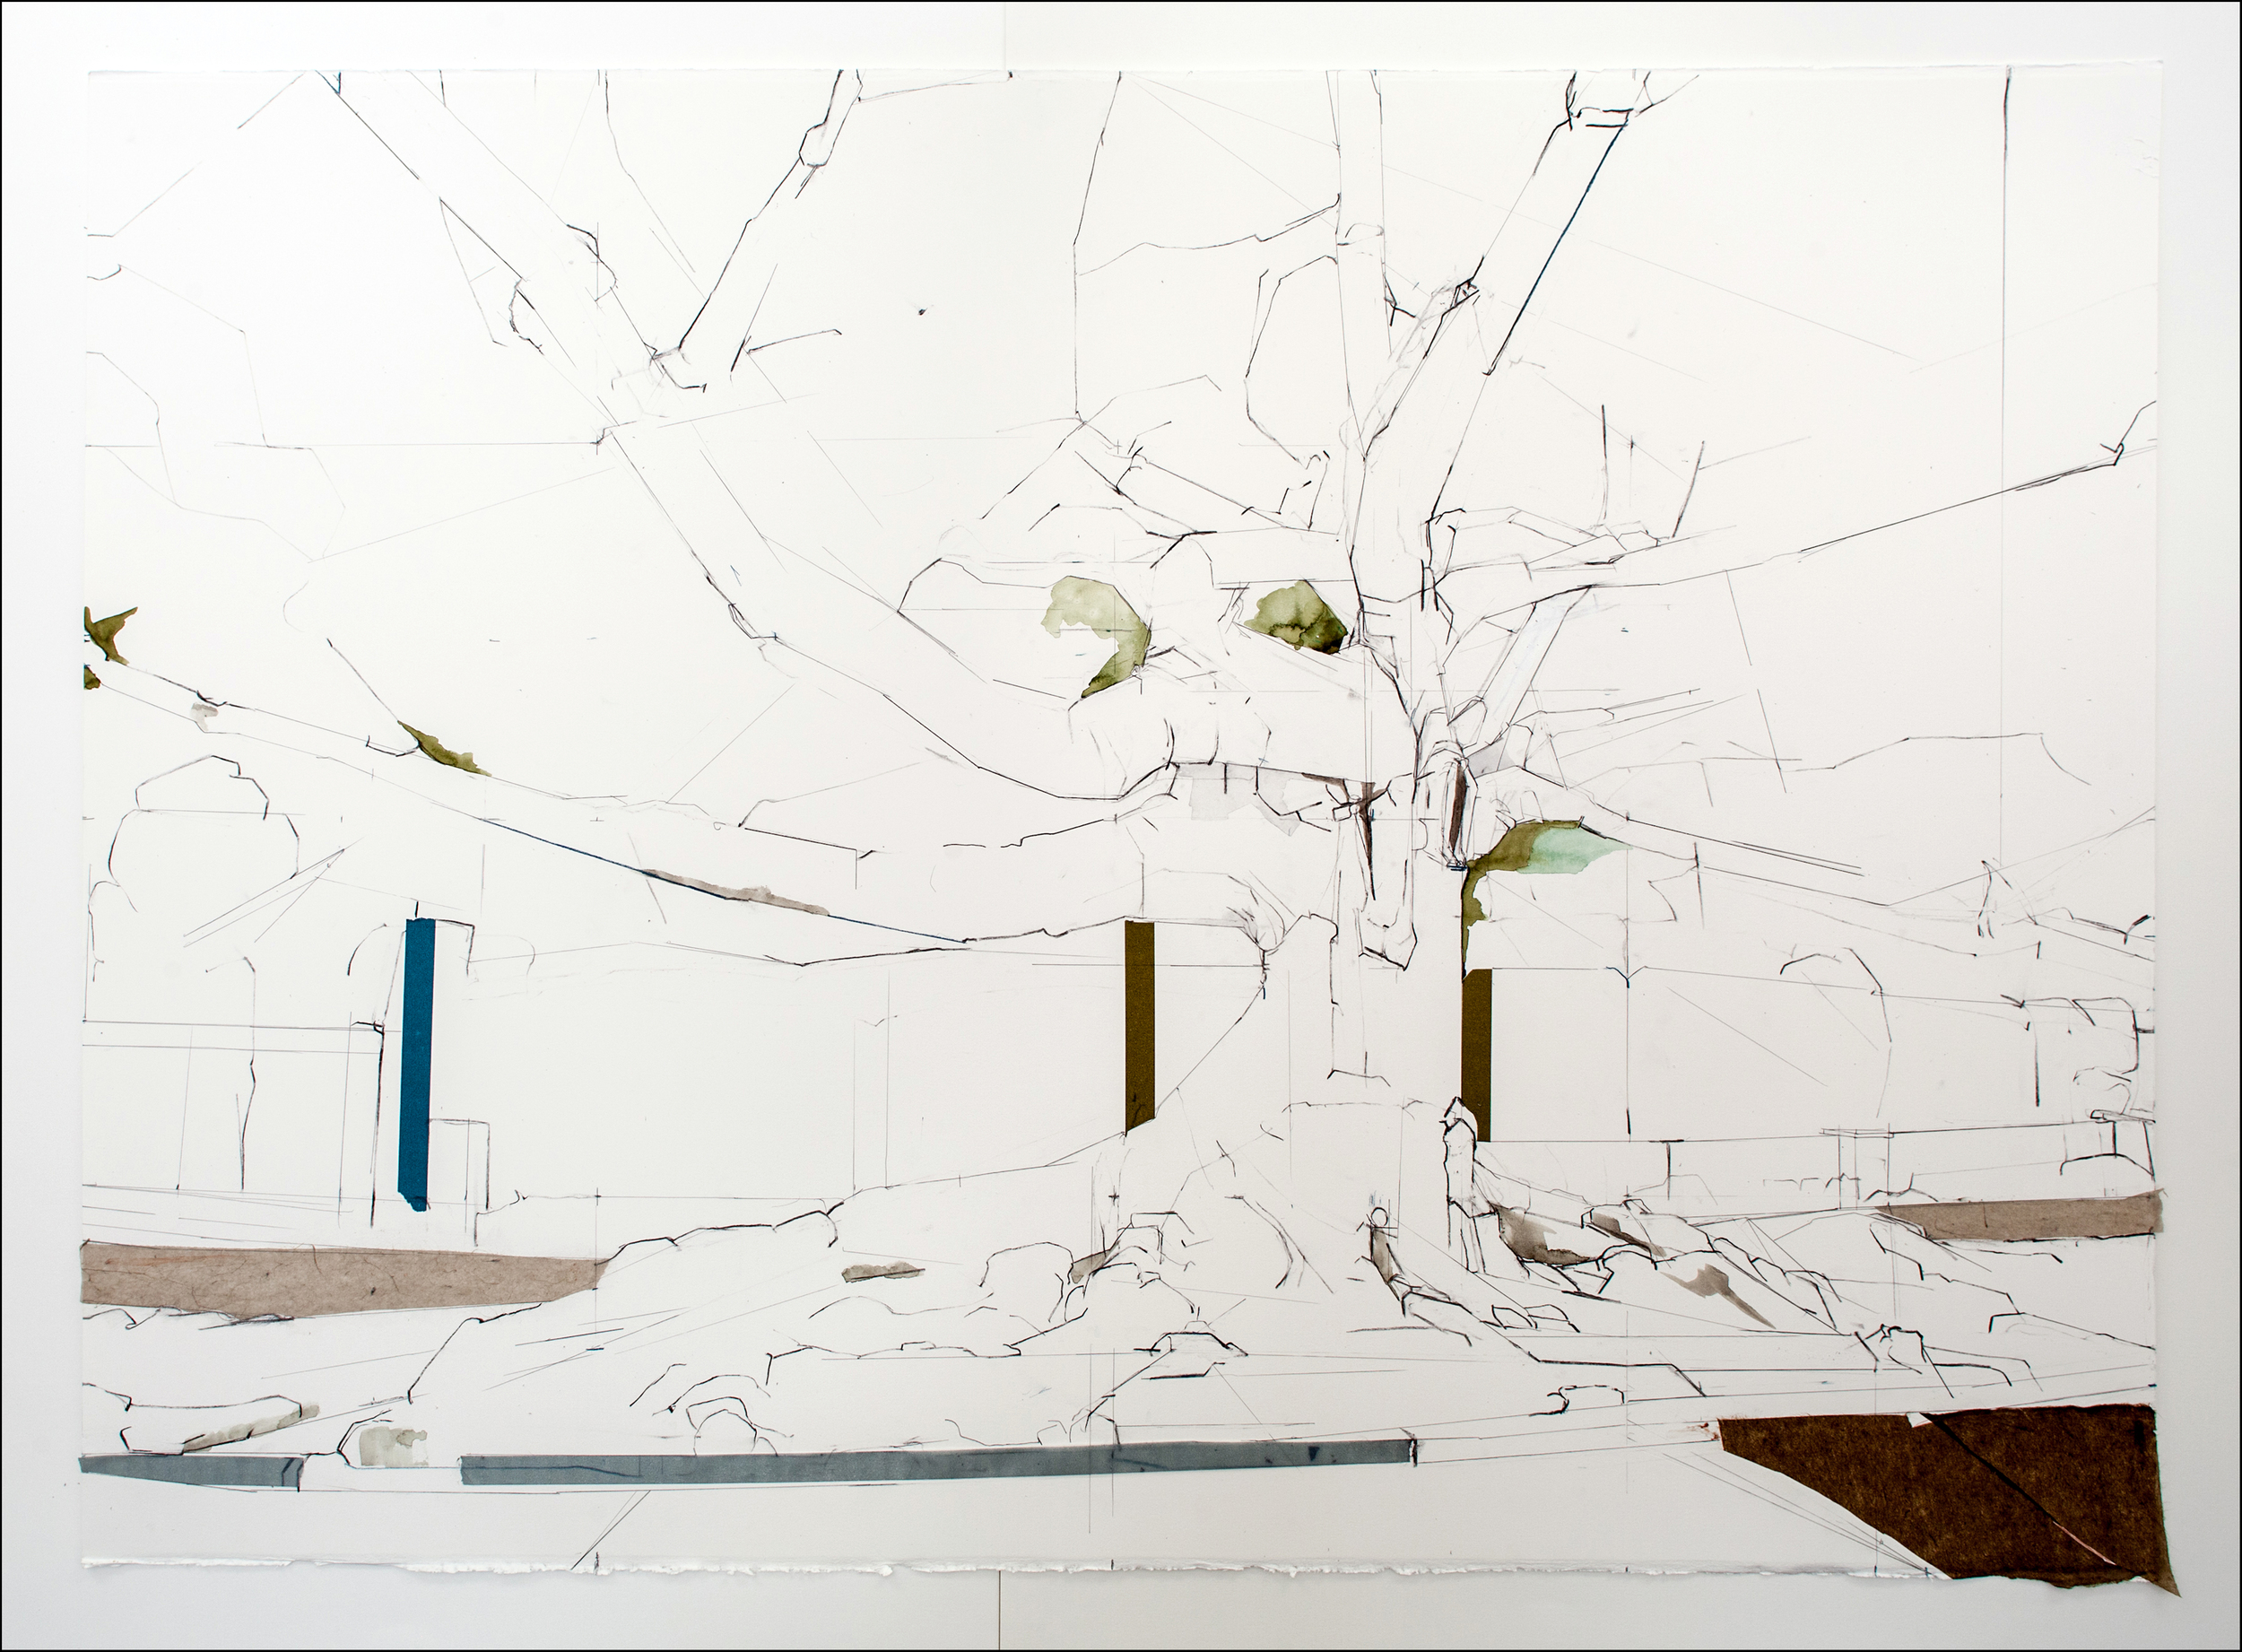 "34° 02' 55.00"" N  118° 29' 39.55"" W,   2012, Mixed Media on paper (38 inches x 48 inches) (framed)"